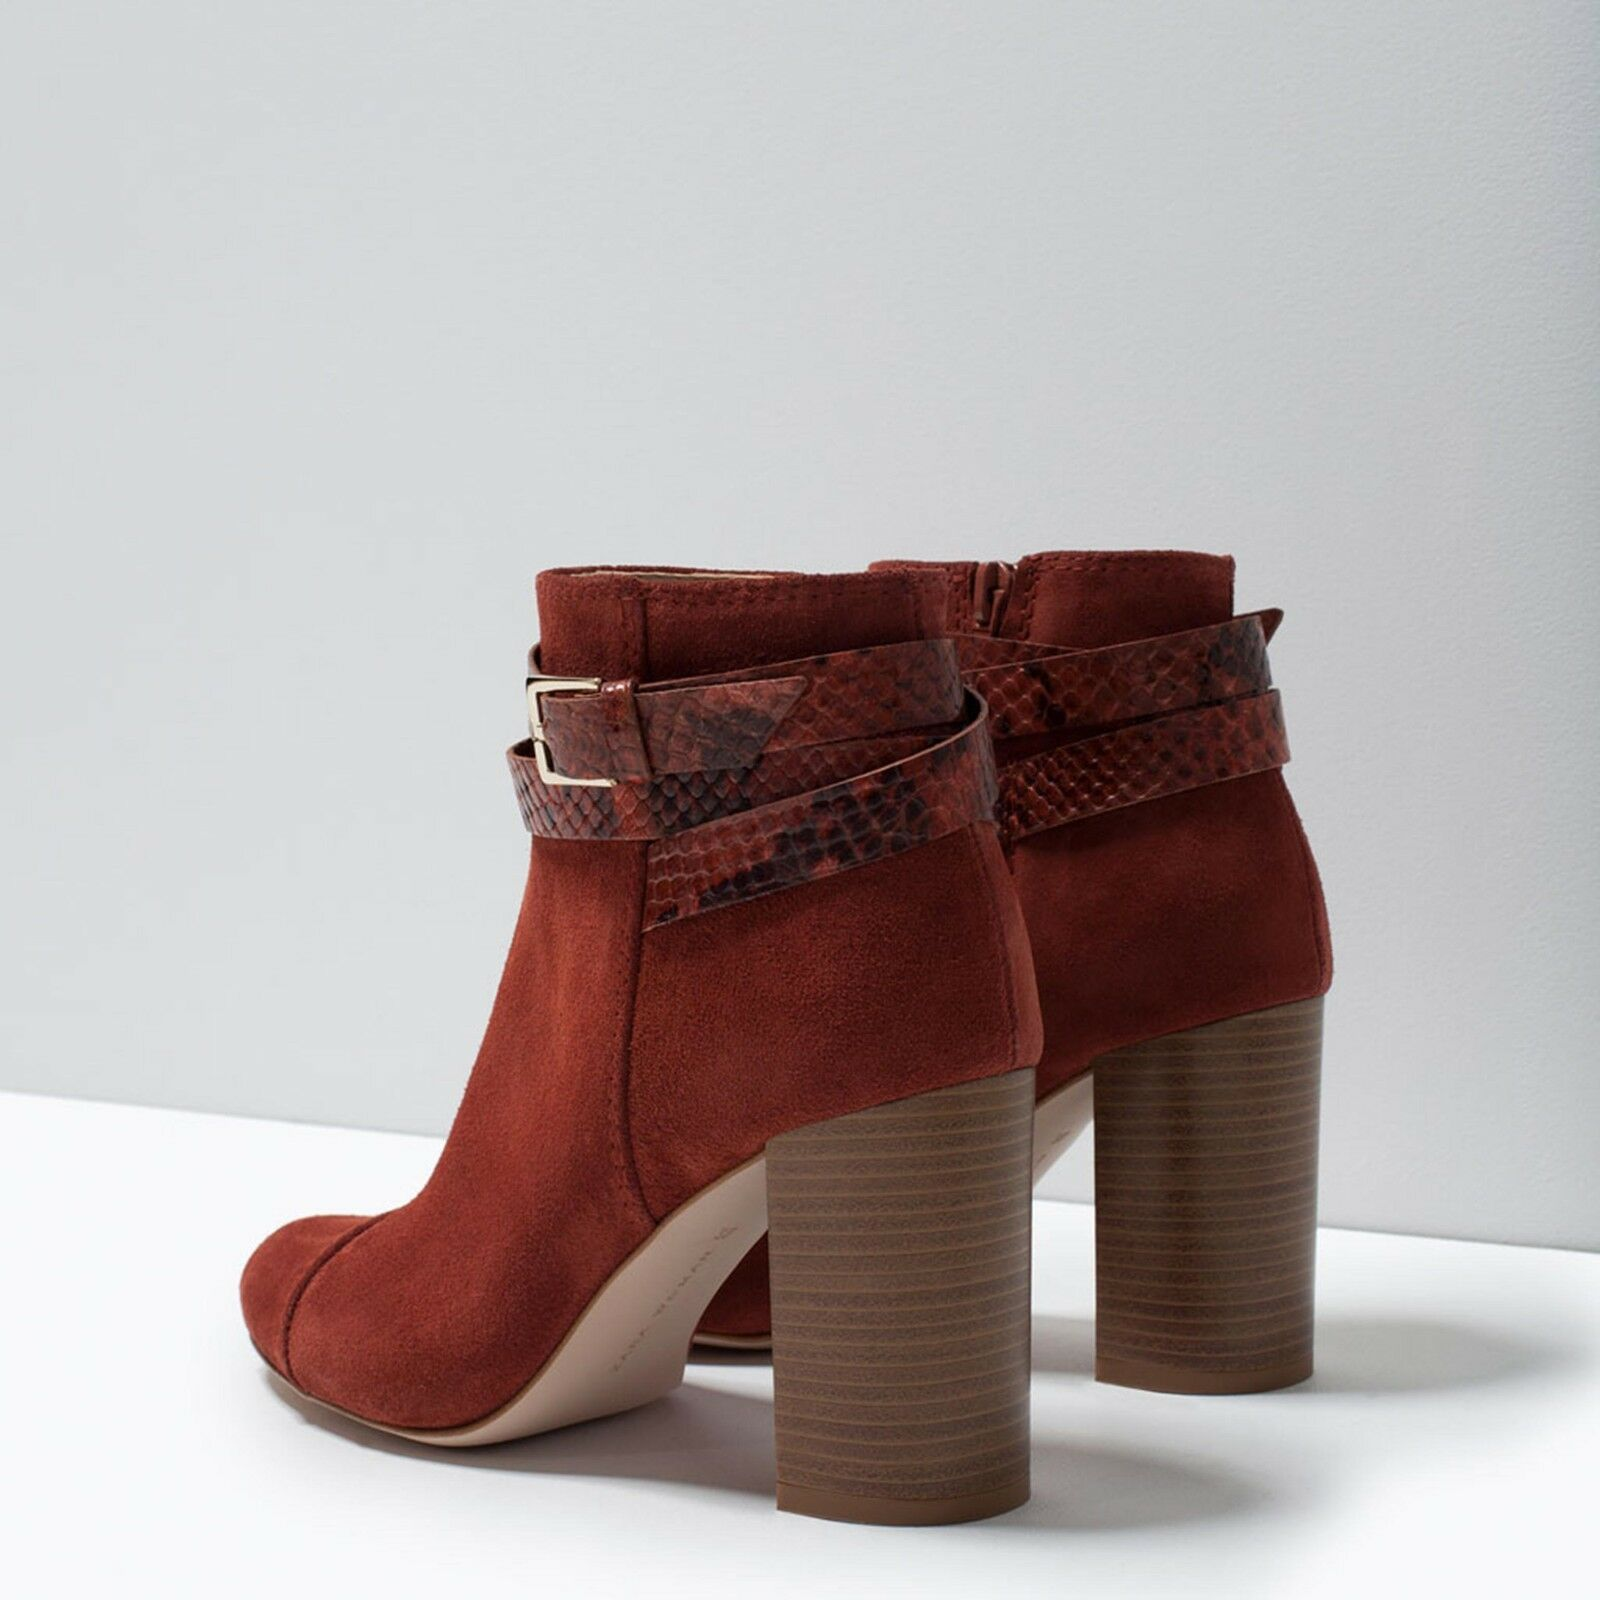 ZARA BRICK SUEDE LEATHER ANKLE Schuhe HIGH HIGH HIGH HEEL Stiefel 5 UK 38  EU 7.5 US 4f765a